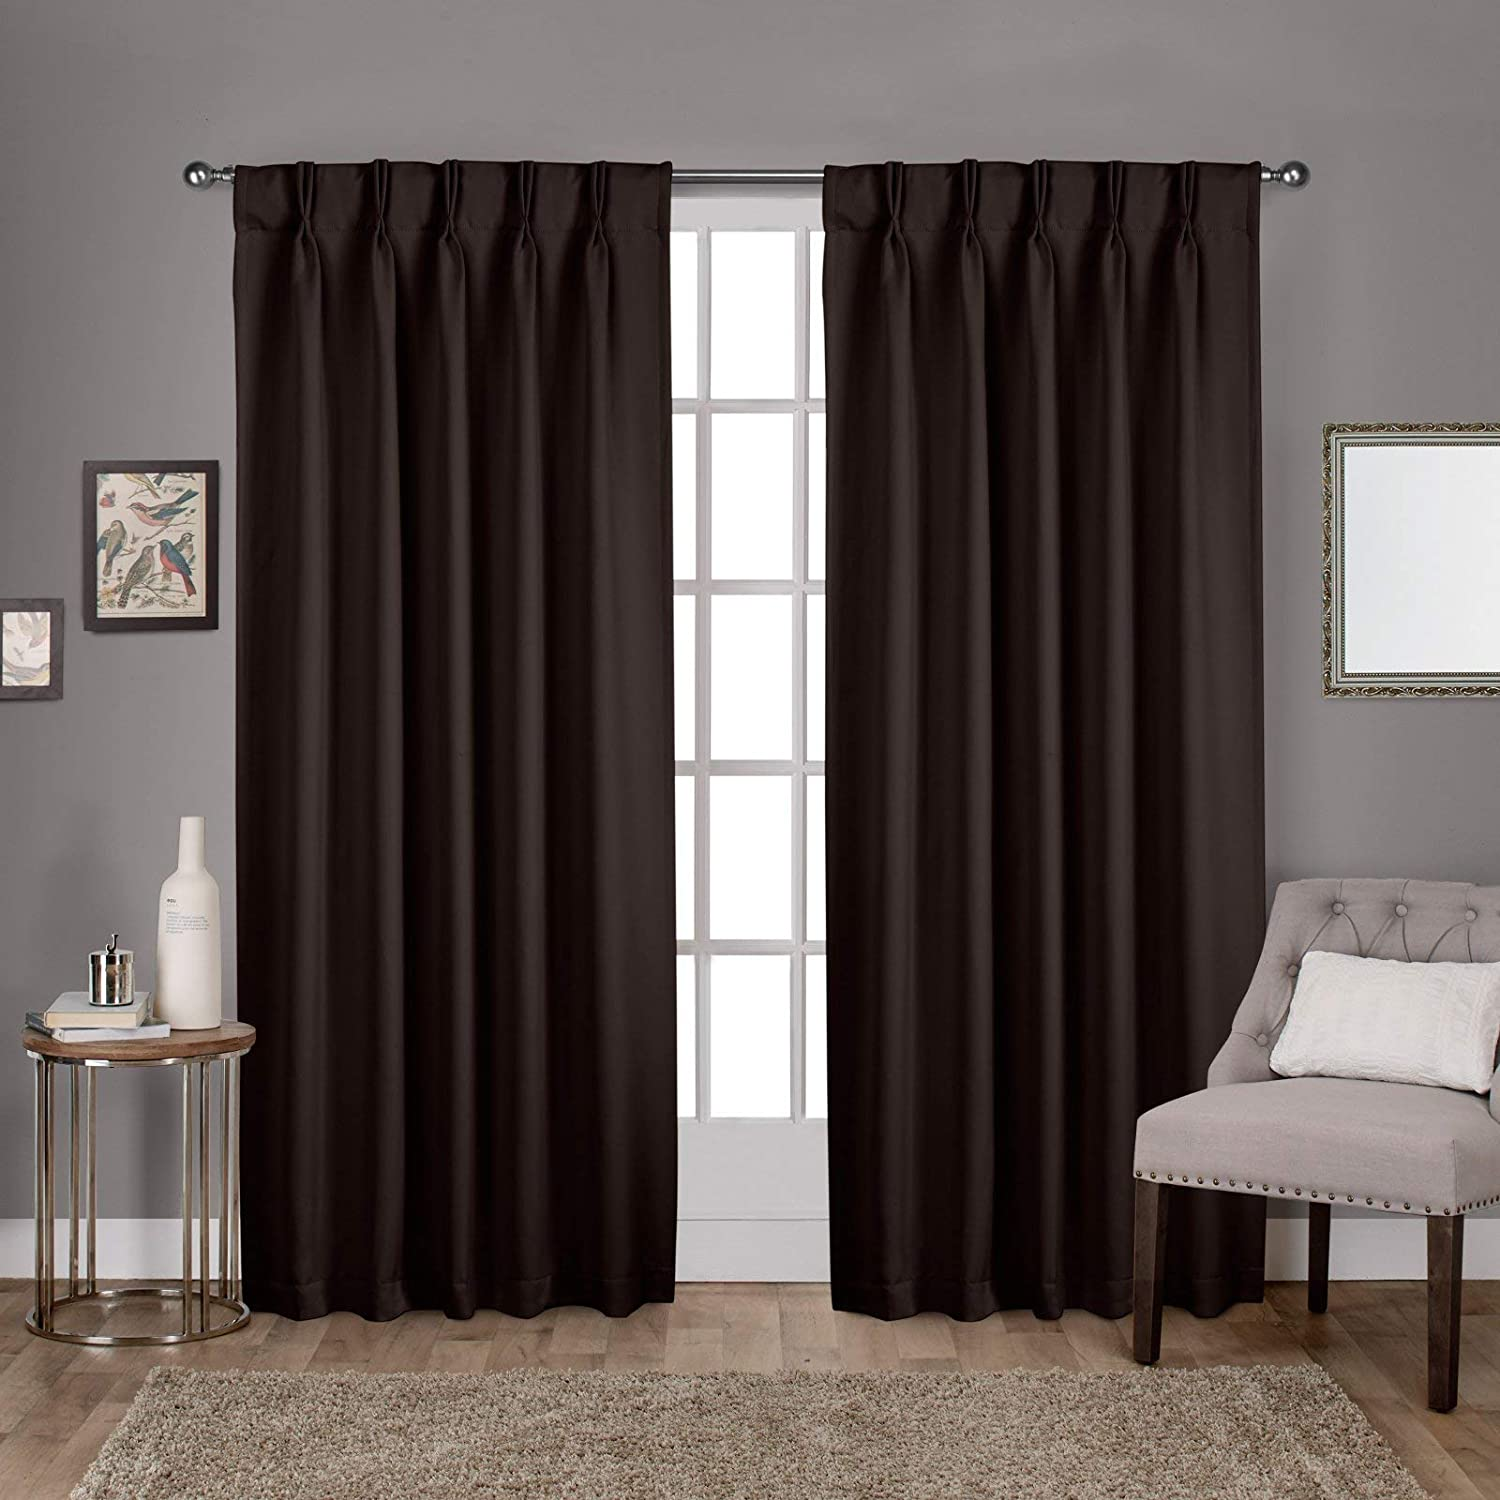 Manufacturer regenerated product EcoDrapes Room Jacksonville Mall Darkening Thermal Double Pinch Insulated Pleated